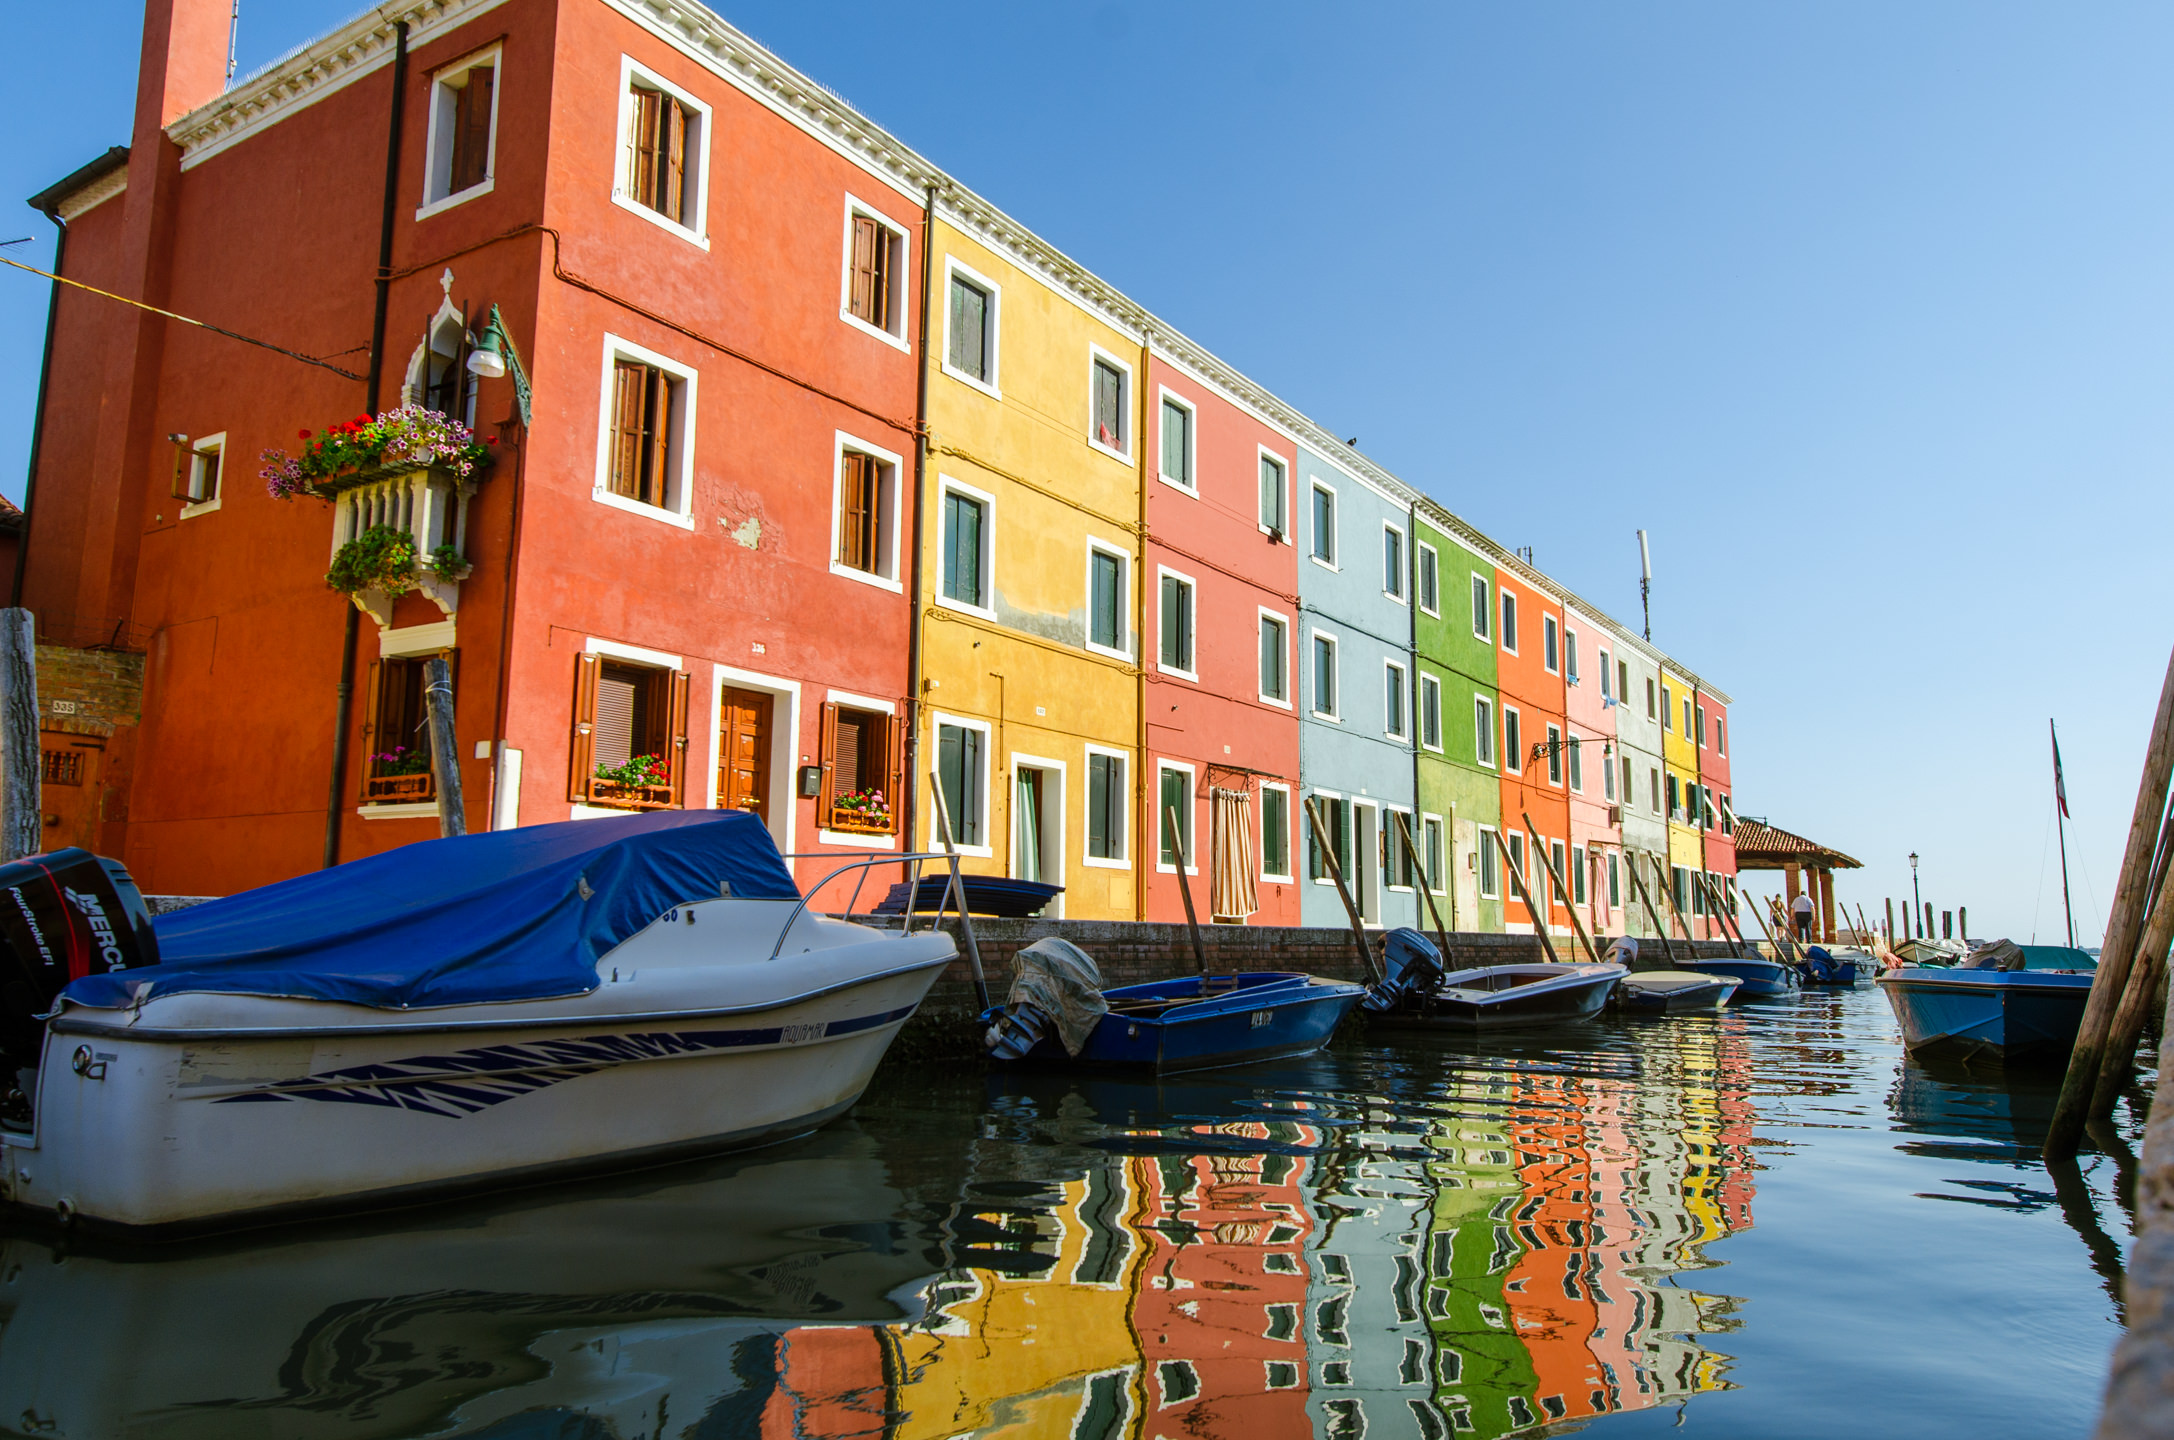 Colorful Homes and Boasts along the Canals in Burano Italy outside of Venice